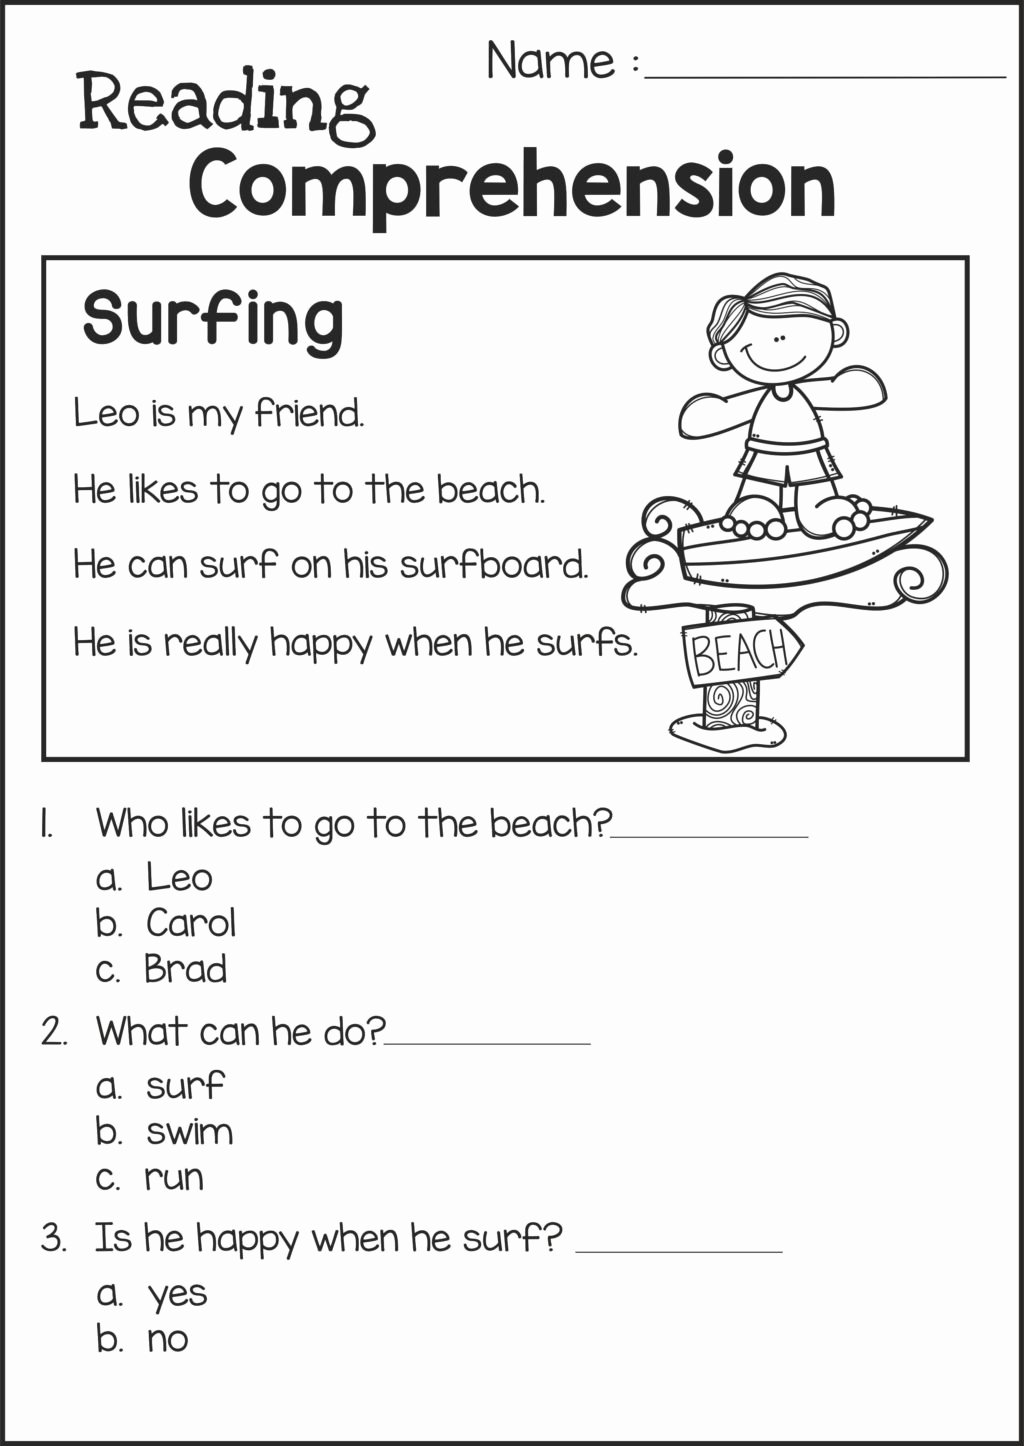 Grade 2 Reading Comprehension Worksheets Ideas Worksheet Printable Grade Readingmprehension Worksheets